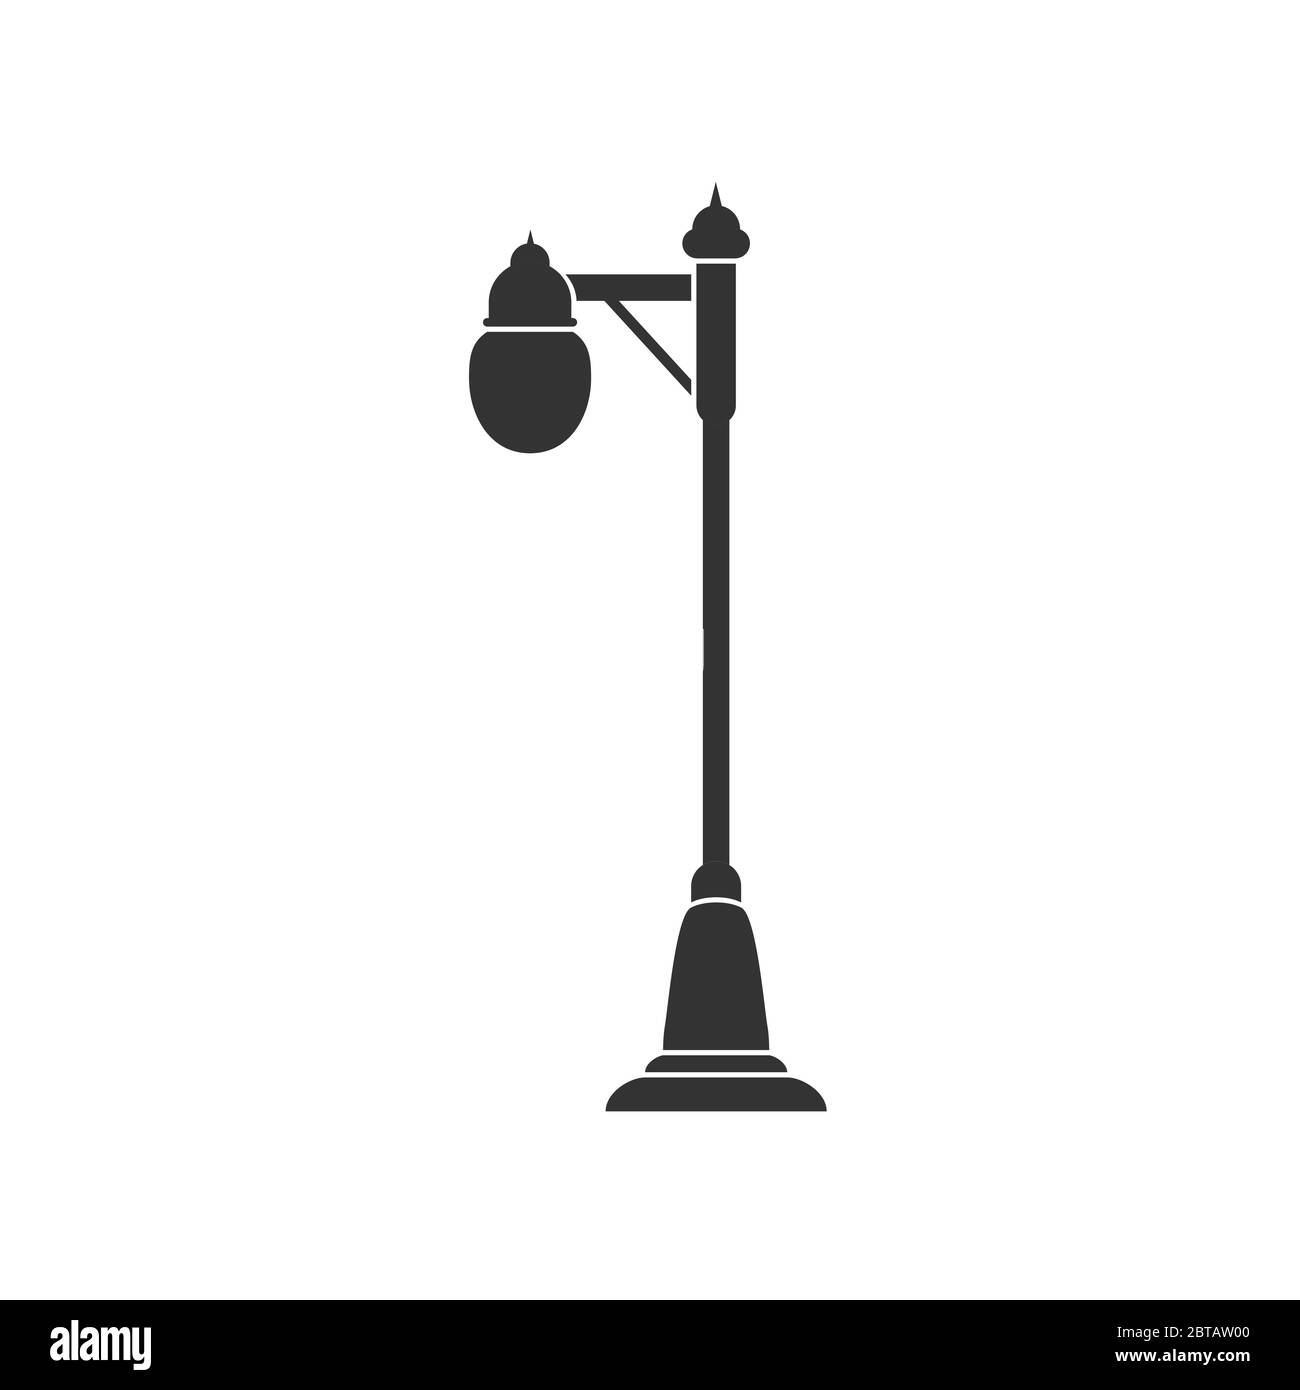 Lighting lamp with one lampshade. Vector illustration for theme design. Isolated on a white background. Simple design. Stock Vector